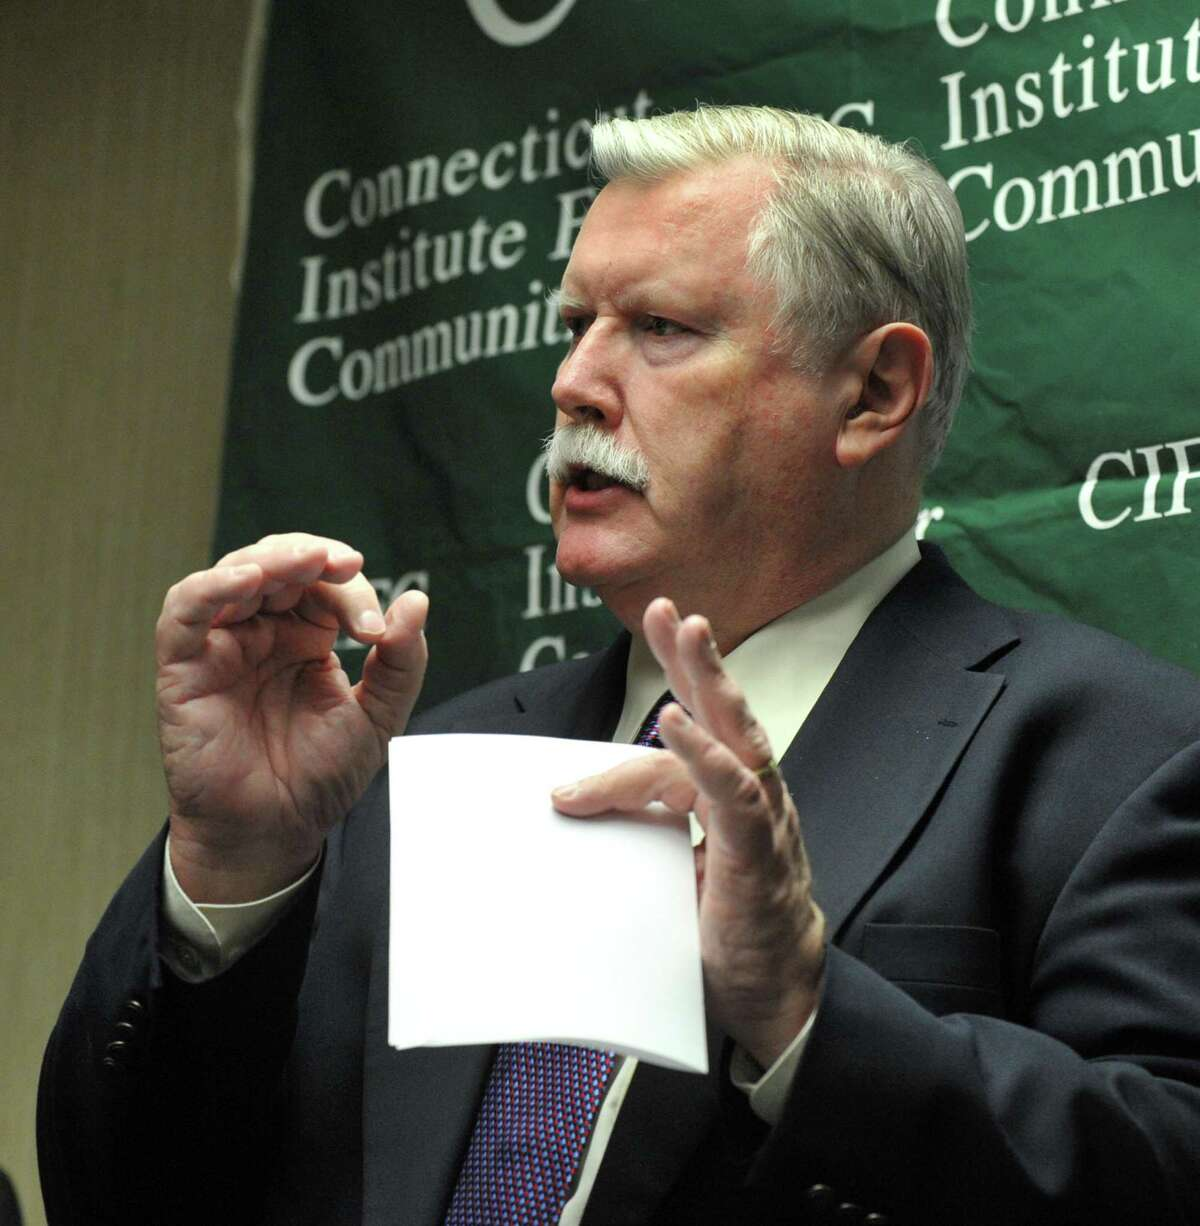 File photo: James Maloney, president and CEO of Connecticut Institute for Communities. ,